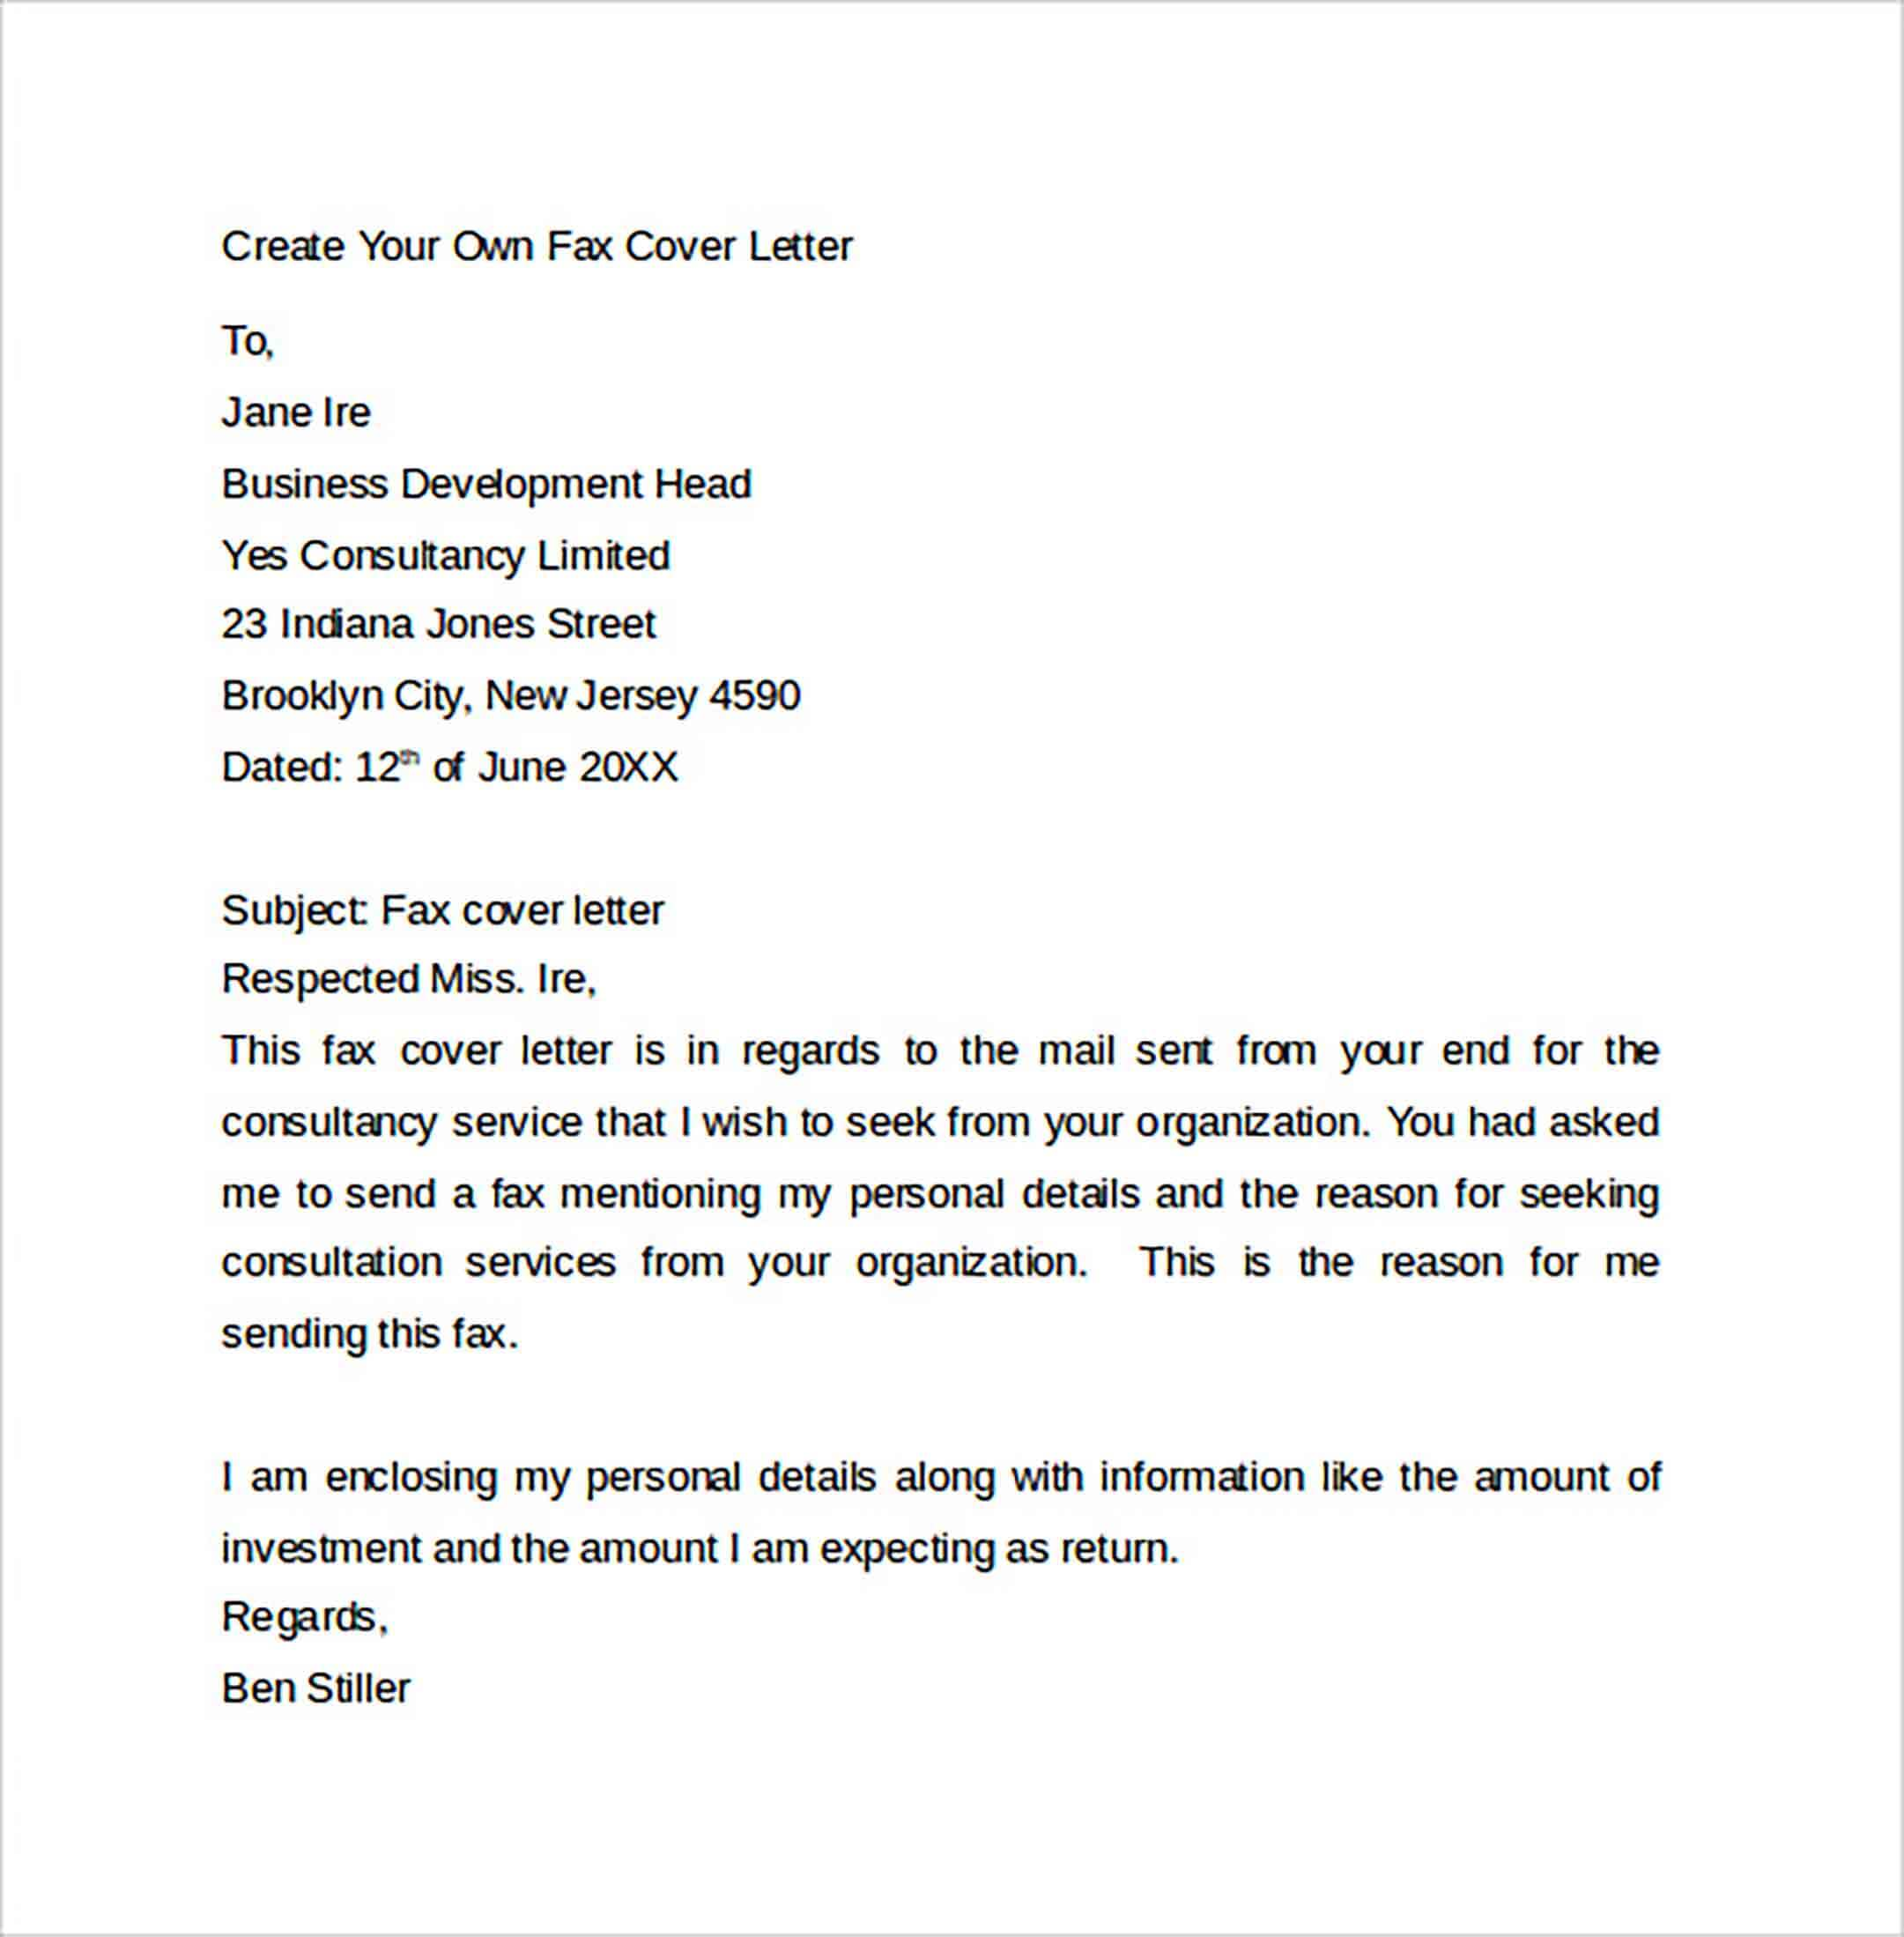 Create Your Own Fax Cover Letter